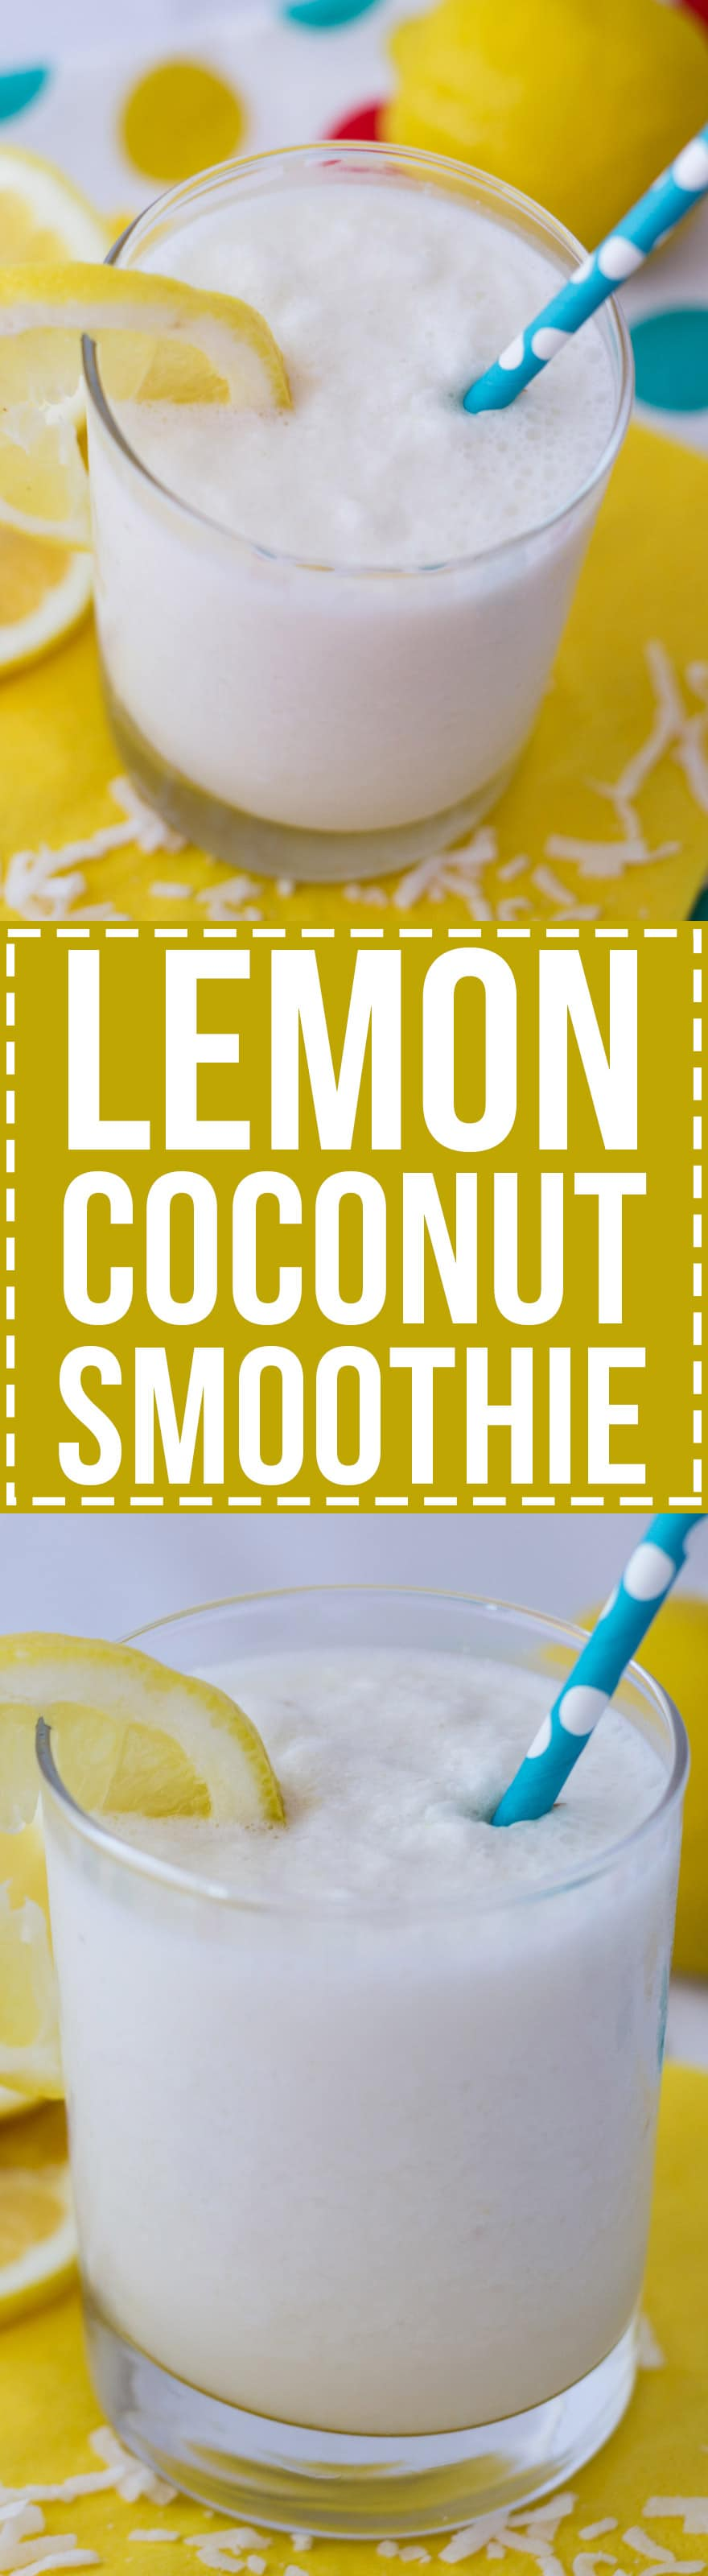 This tart and refreshing Lemon Coconut Smoothie really hits the spot in spring and summer! It's a light, low cal drink that you don't have to feel guilty about.